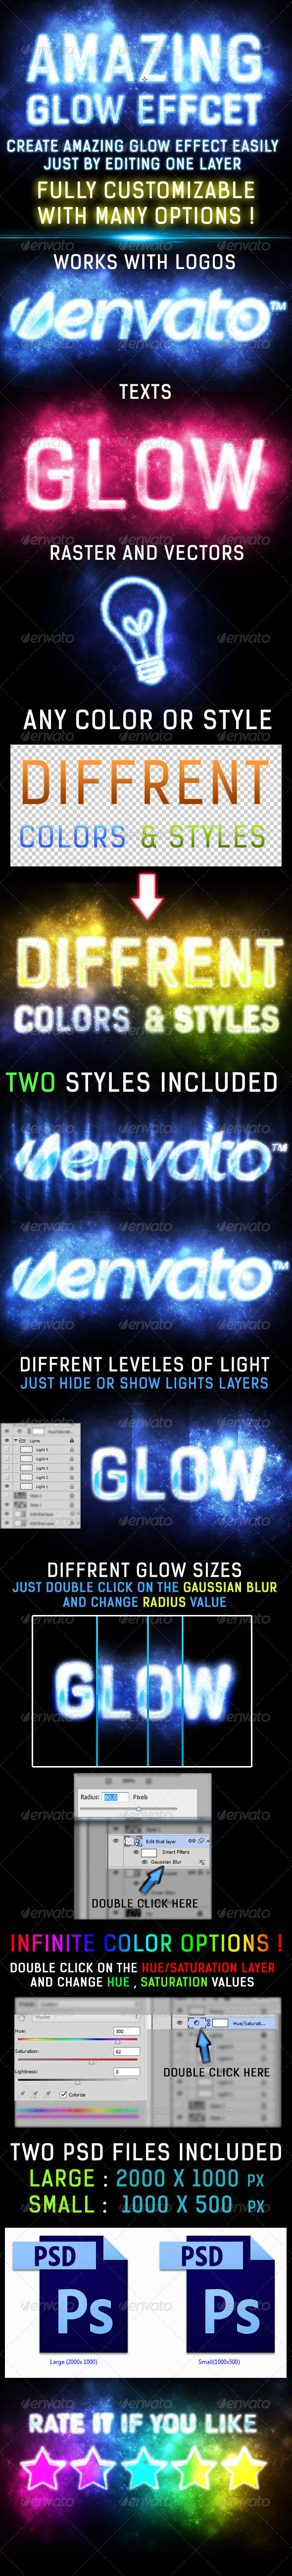 GraphicRiver Amazing Glow Light Effect 6346707